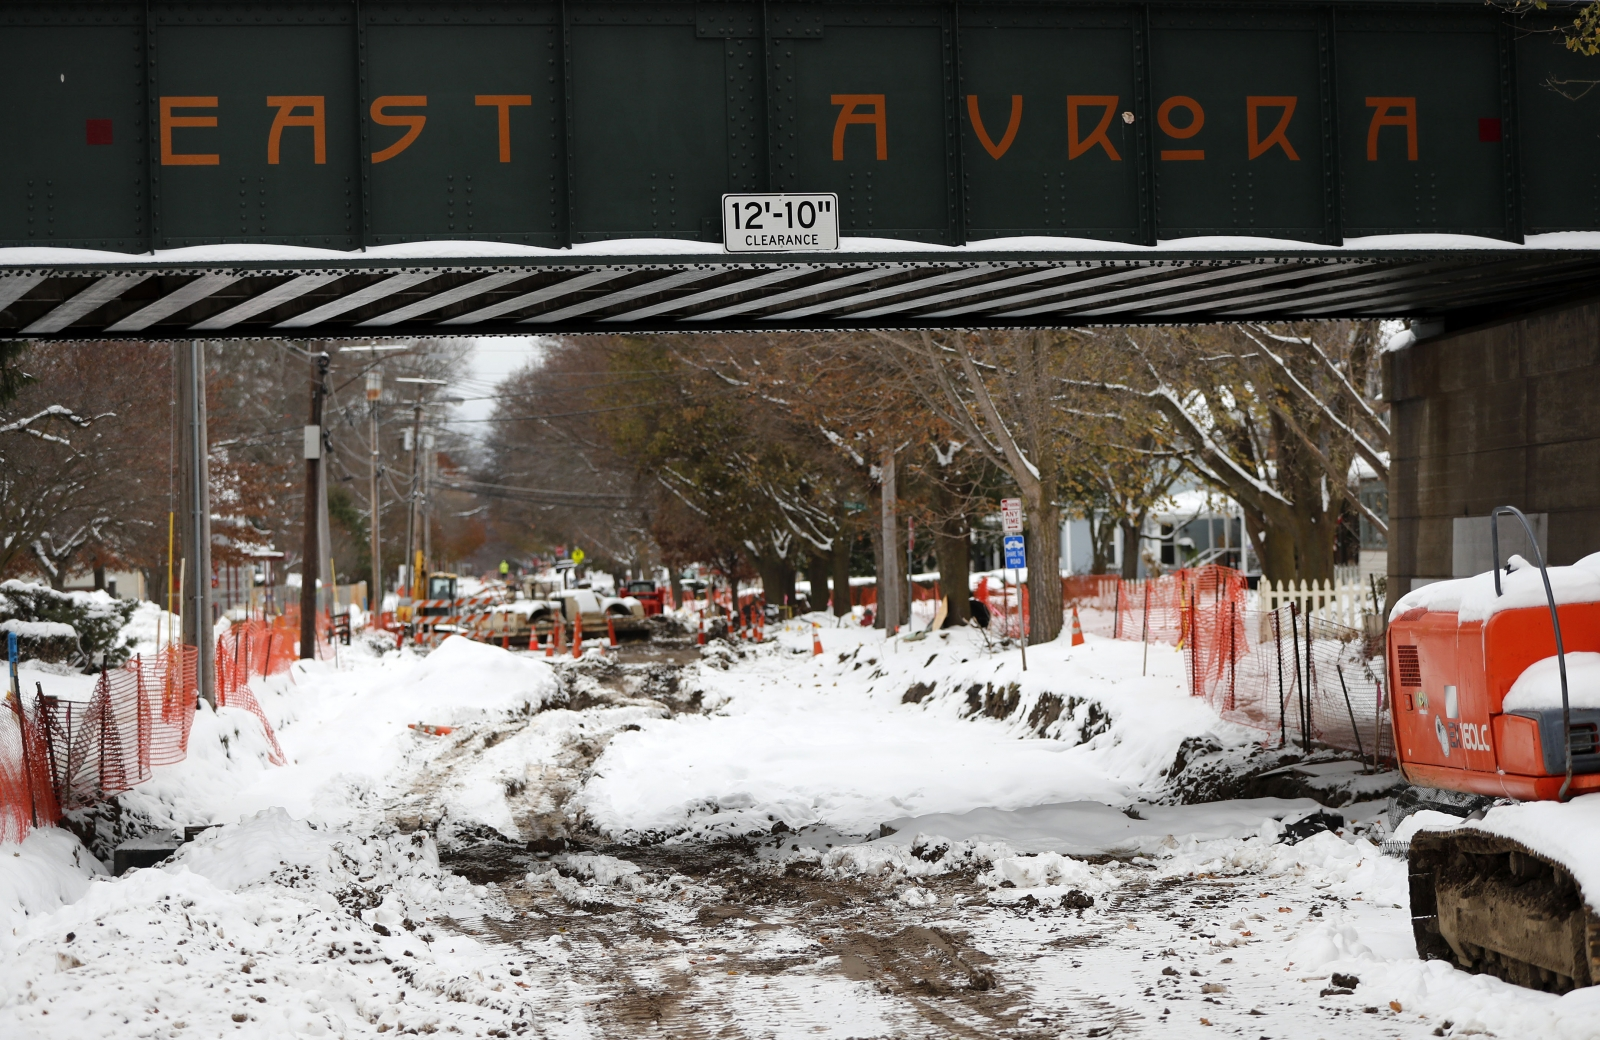 Road project blues in East Aurora to be marked by – what else? – a festival - Buffalo News